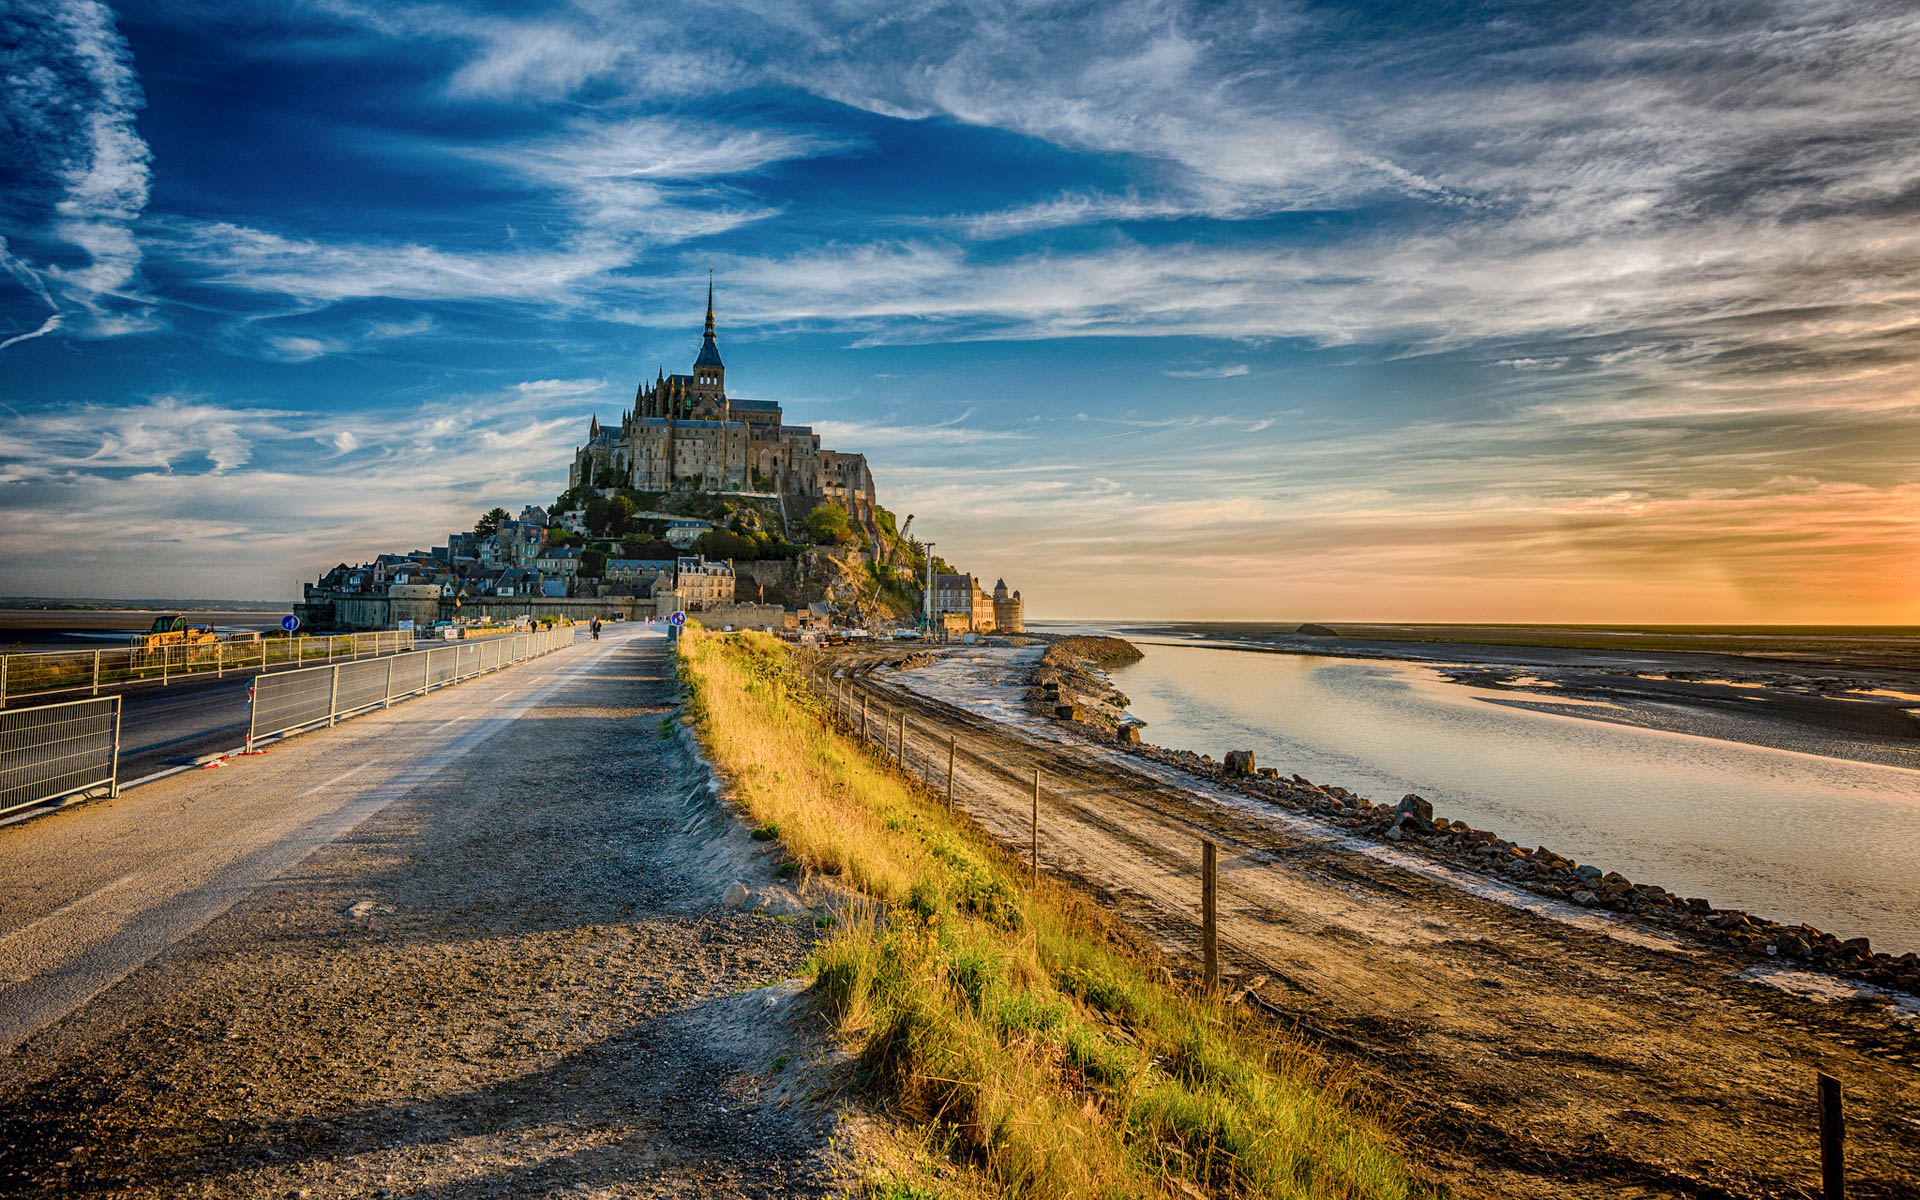 Hd Wallpapers Beautiful Wallpapers: Mont Saint-Michel Beautiful HD Wallpapers, Images In High